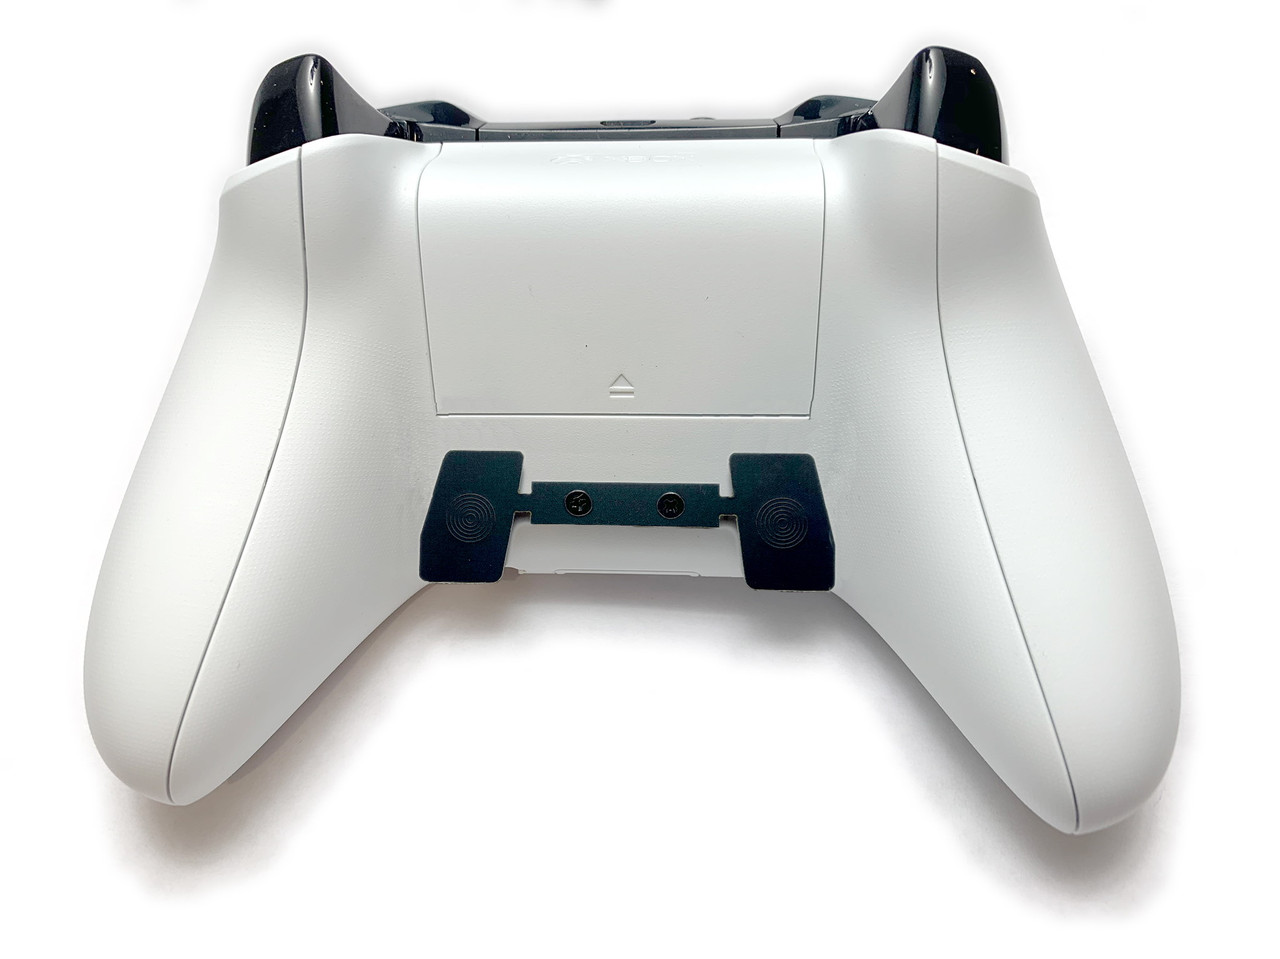 Xbox One controller with 2 button paddle